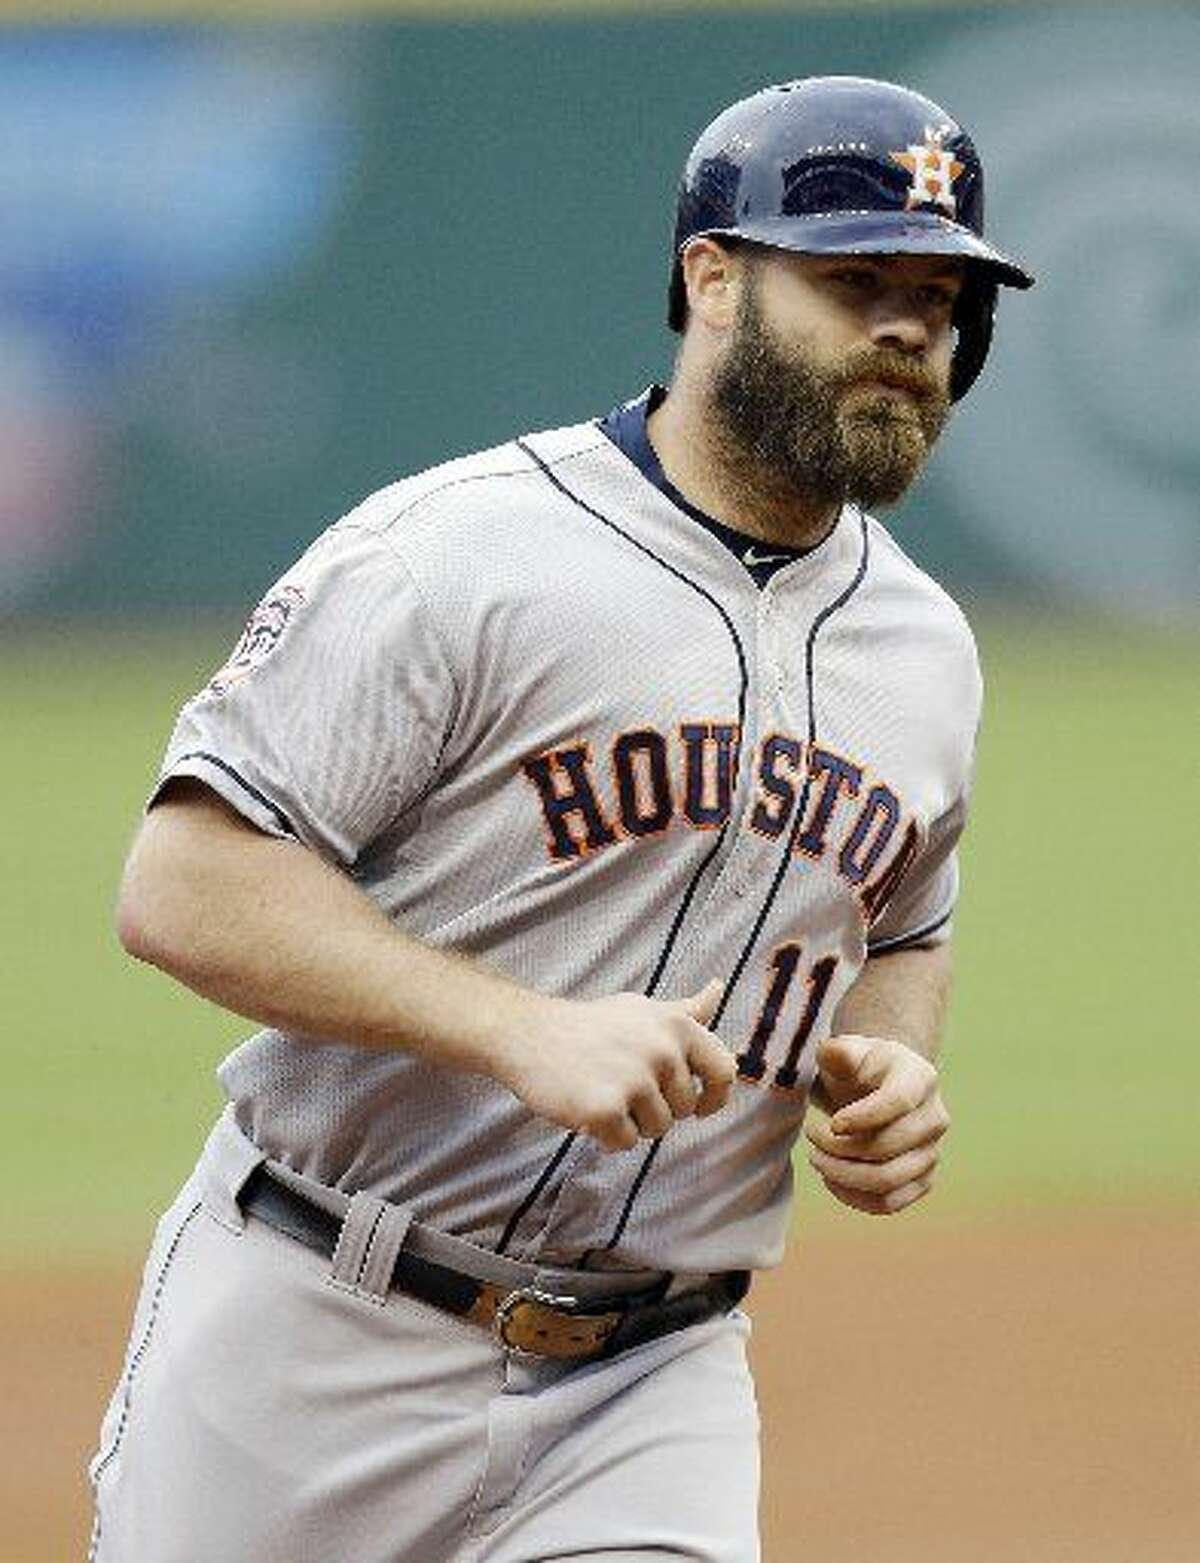 Houston Astros' Evan Gattis runs the bases after hitting a two-run home run off Cleveland Indians starting pitcher Trevor Bauer in the first inning of a baseball game, Wednesday, July 8, 2015, in Cleveland. Jose Altuve scored on the play. (AP Photo/Tony Dejak)